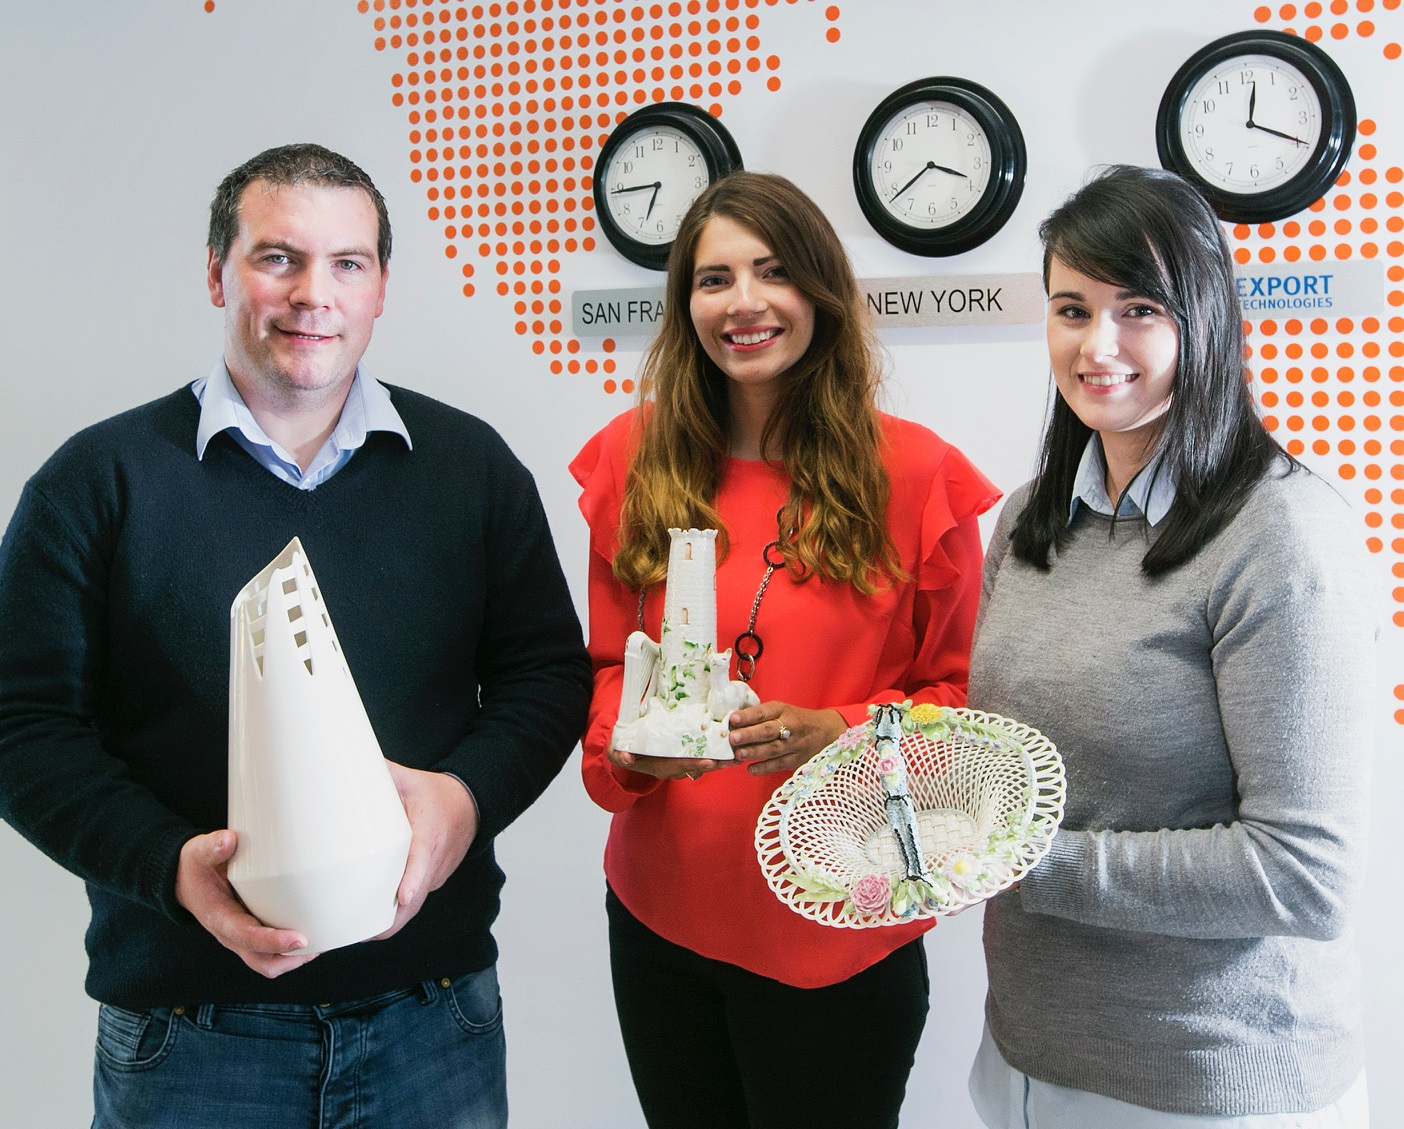 Iconic Brand Belleek is Now Using IRP Technology